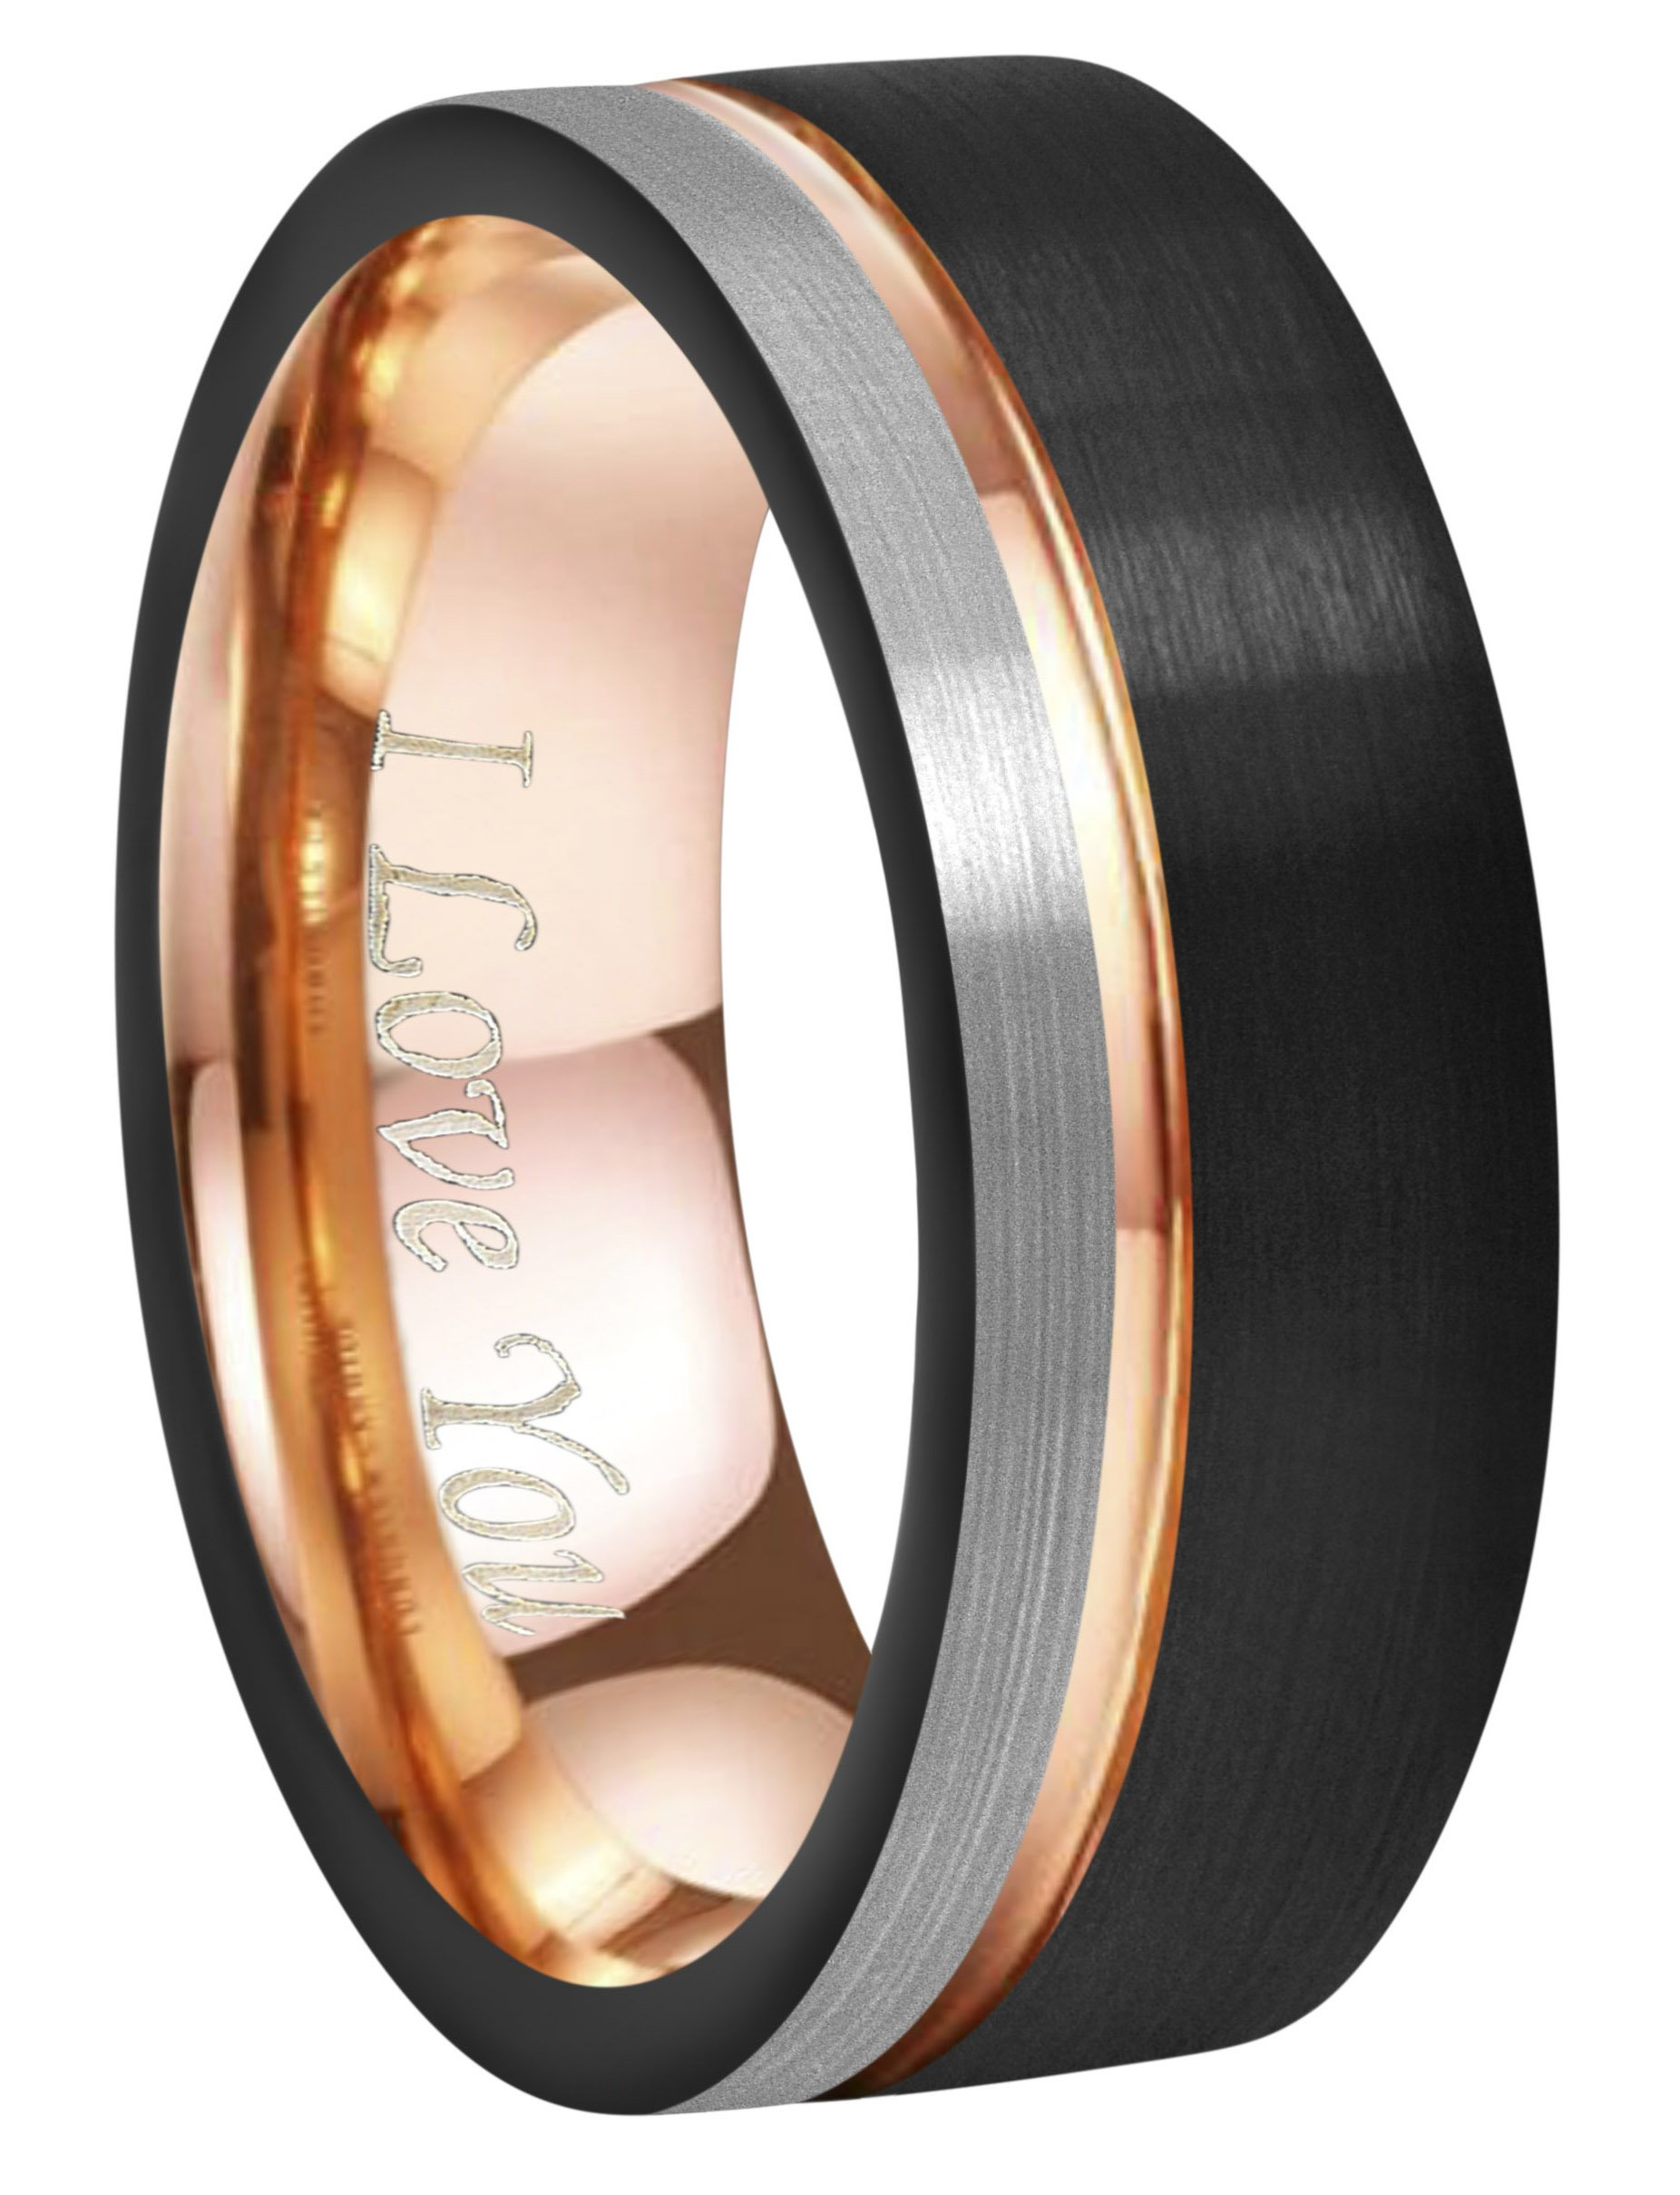 Crownal 6mm/8mm Tungsten Carbide Wedding Rings Men Women Rose Gold Line Ring Black and Silver Brushed Engraved ''I Love You'' Comfort Fit Size 4 To 16 (8mm,11.5)